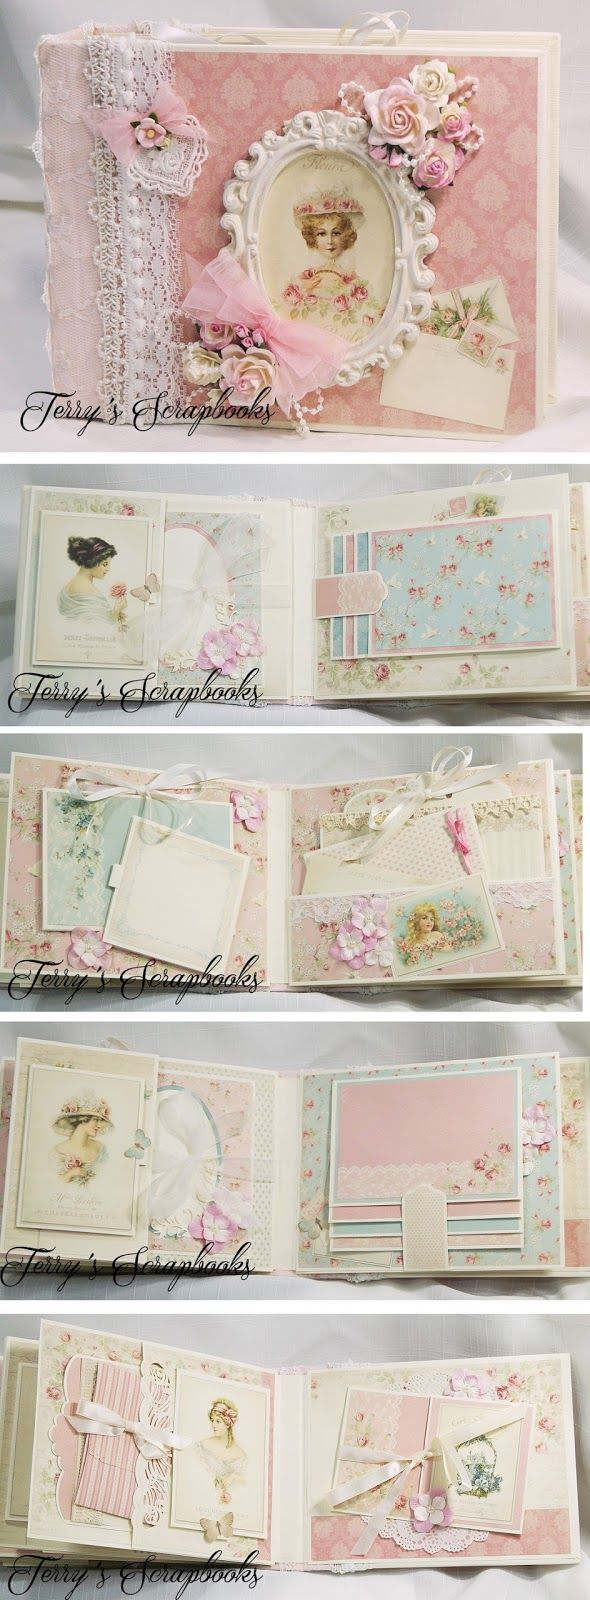 How to open scrapbook binding